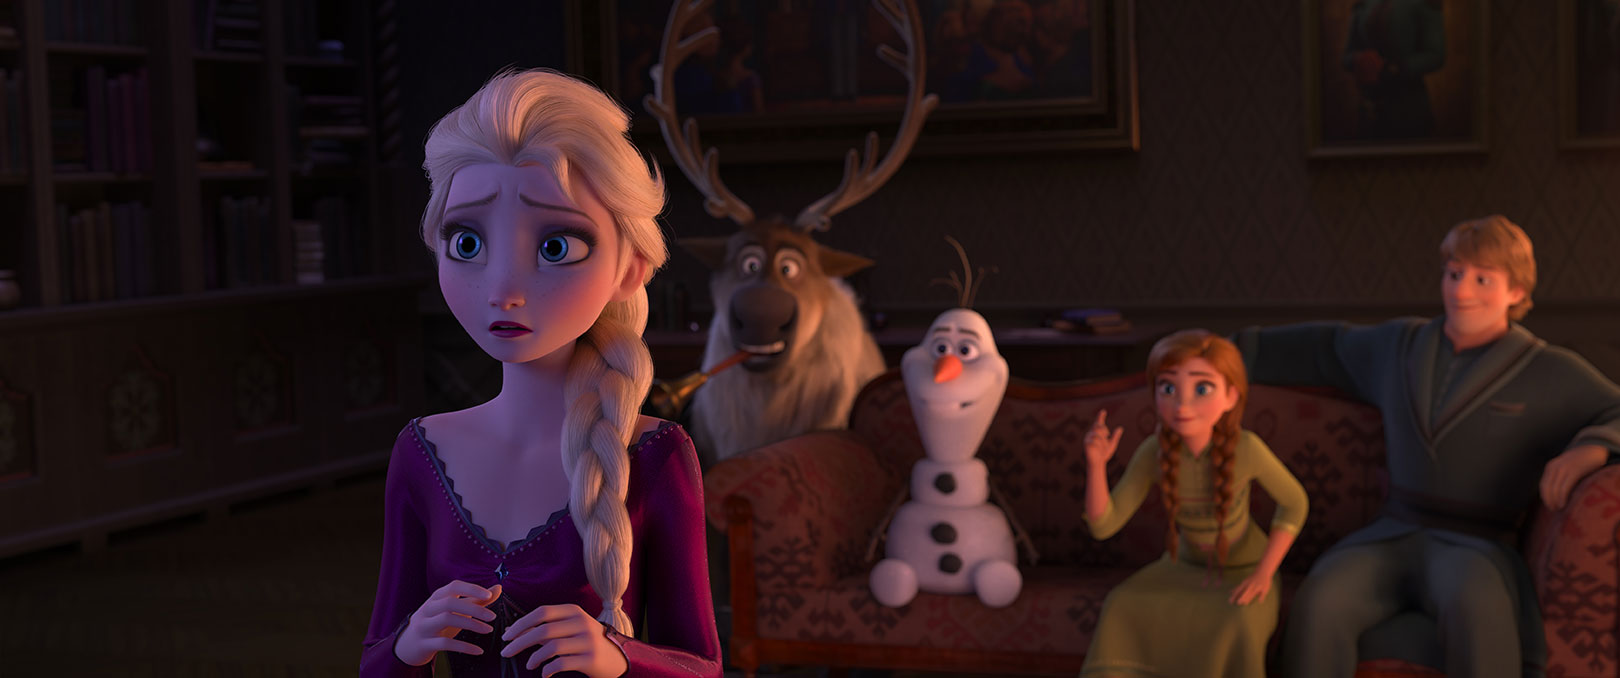 Frozen II - Elsa, Sven, Olaf, Anna, and Kristoff